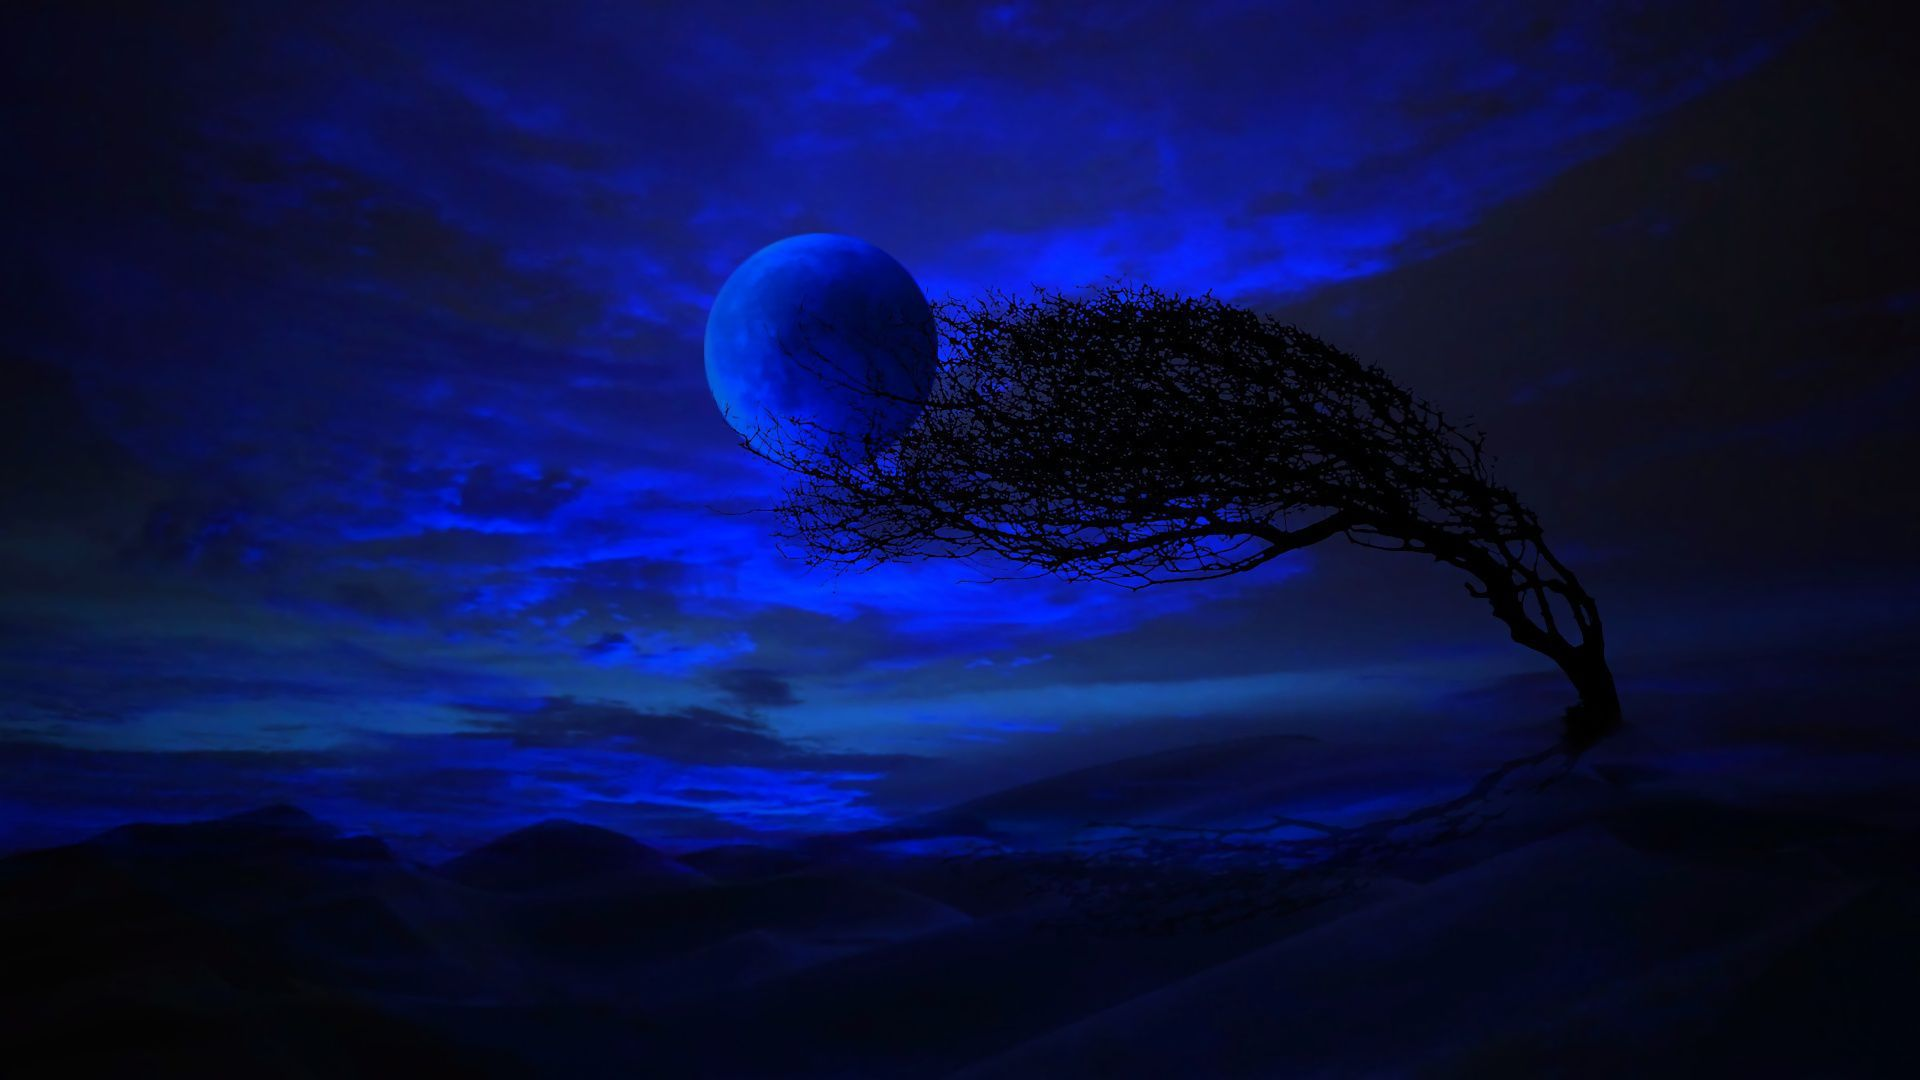 Blue Moon Wallpapers